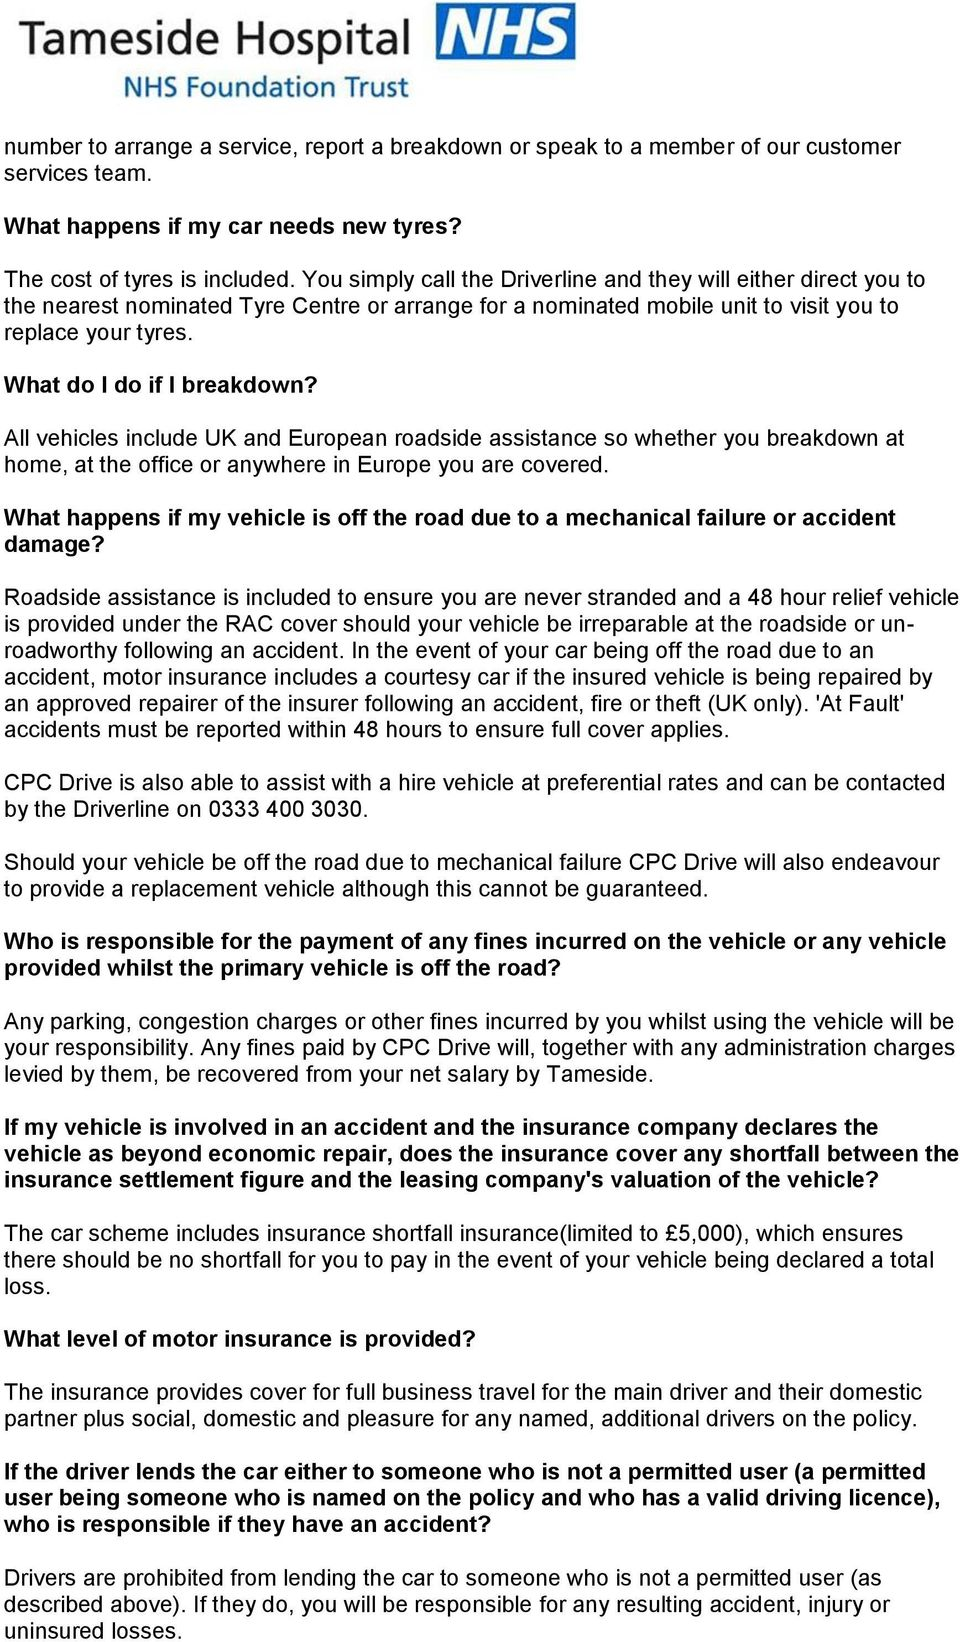 Faqs. Efits; the car scheme and how it works. Introduction pdf.